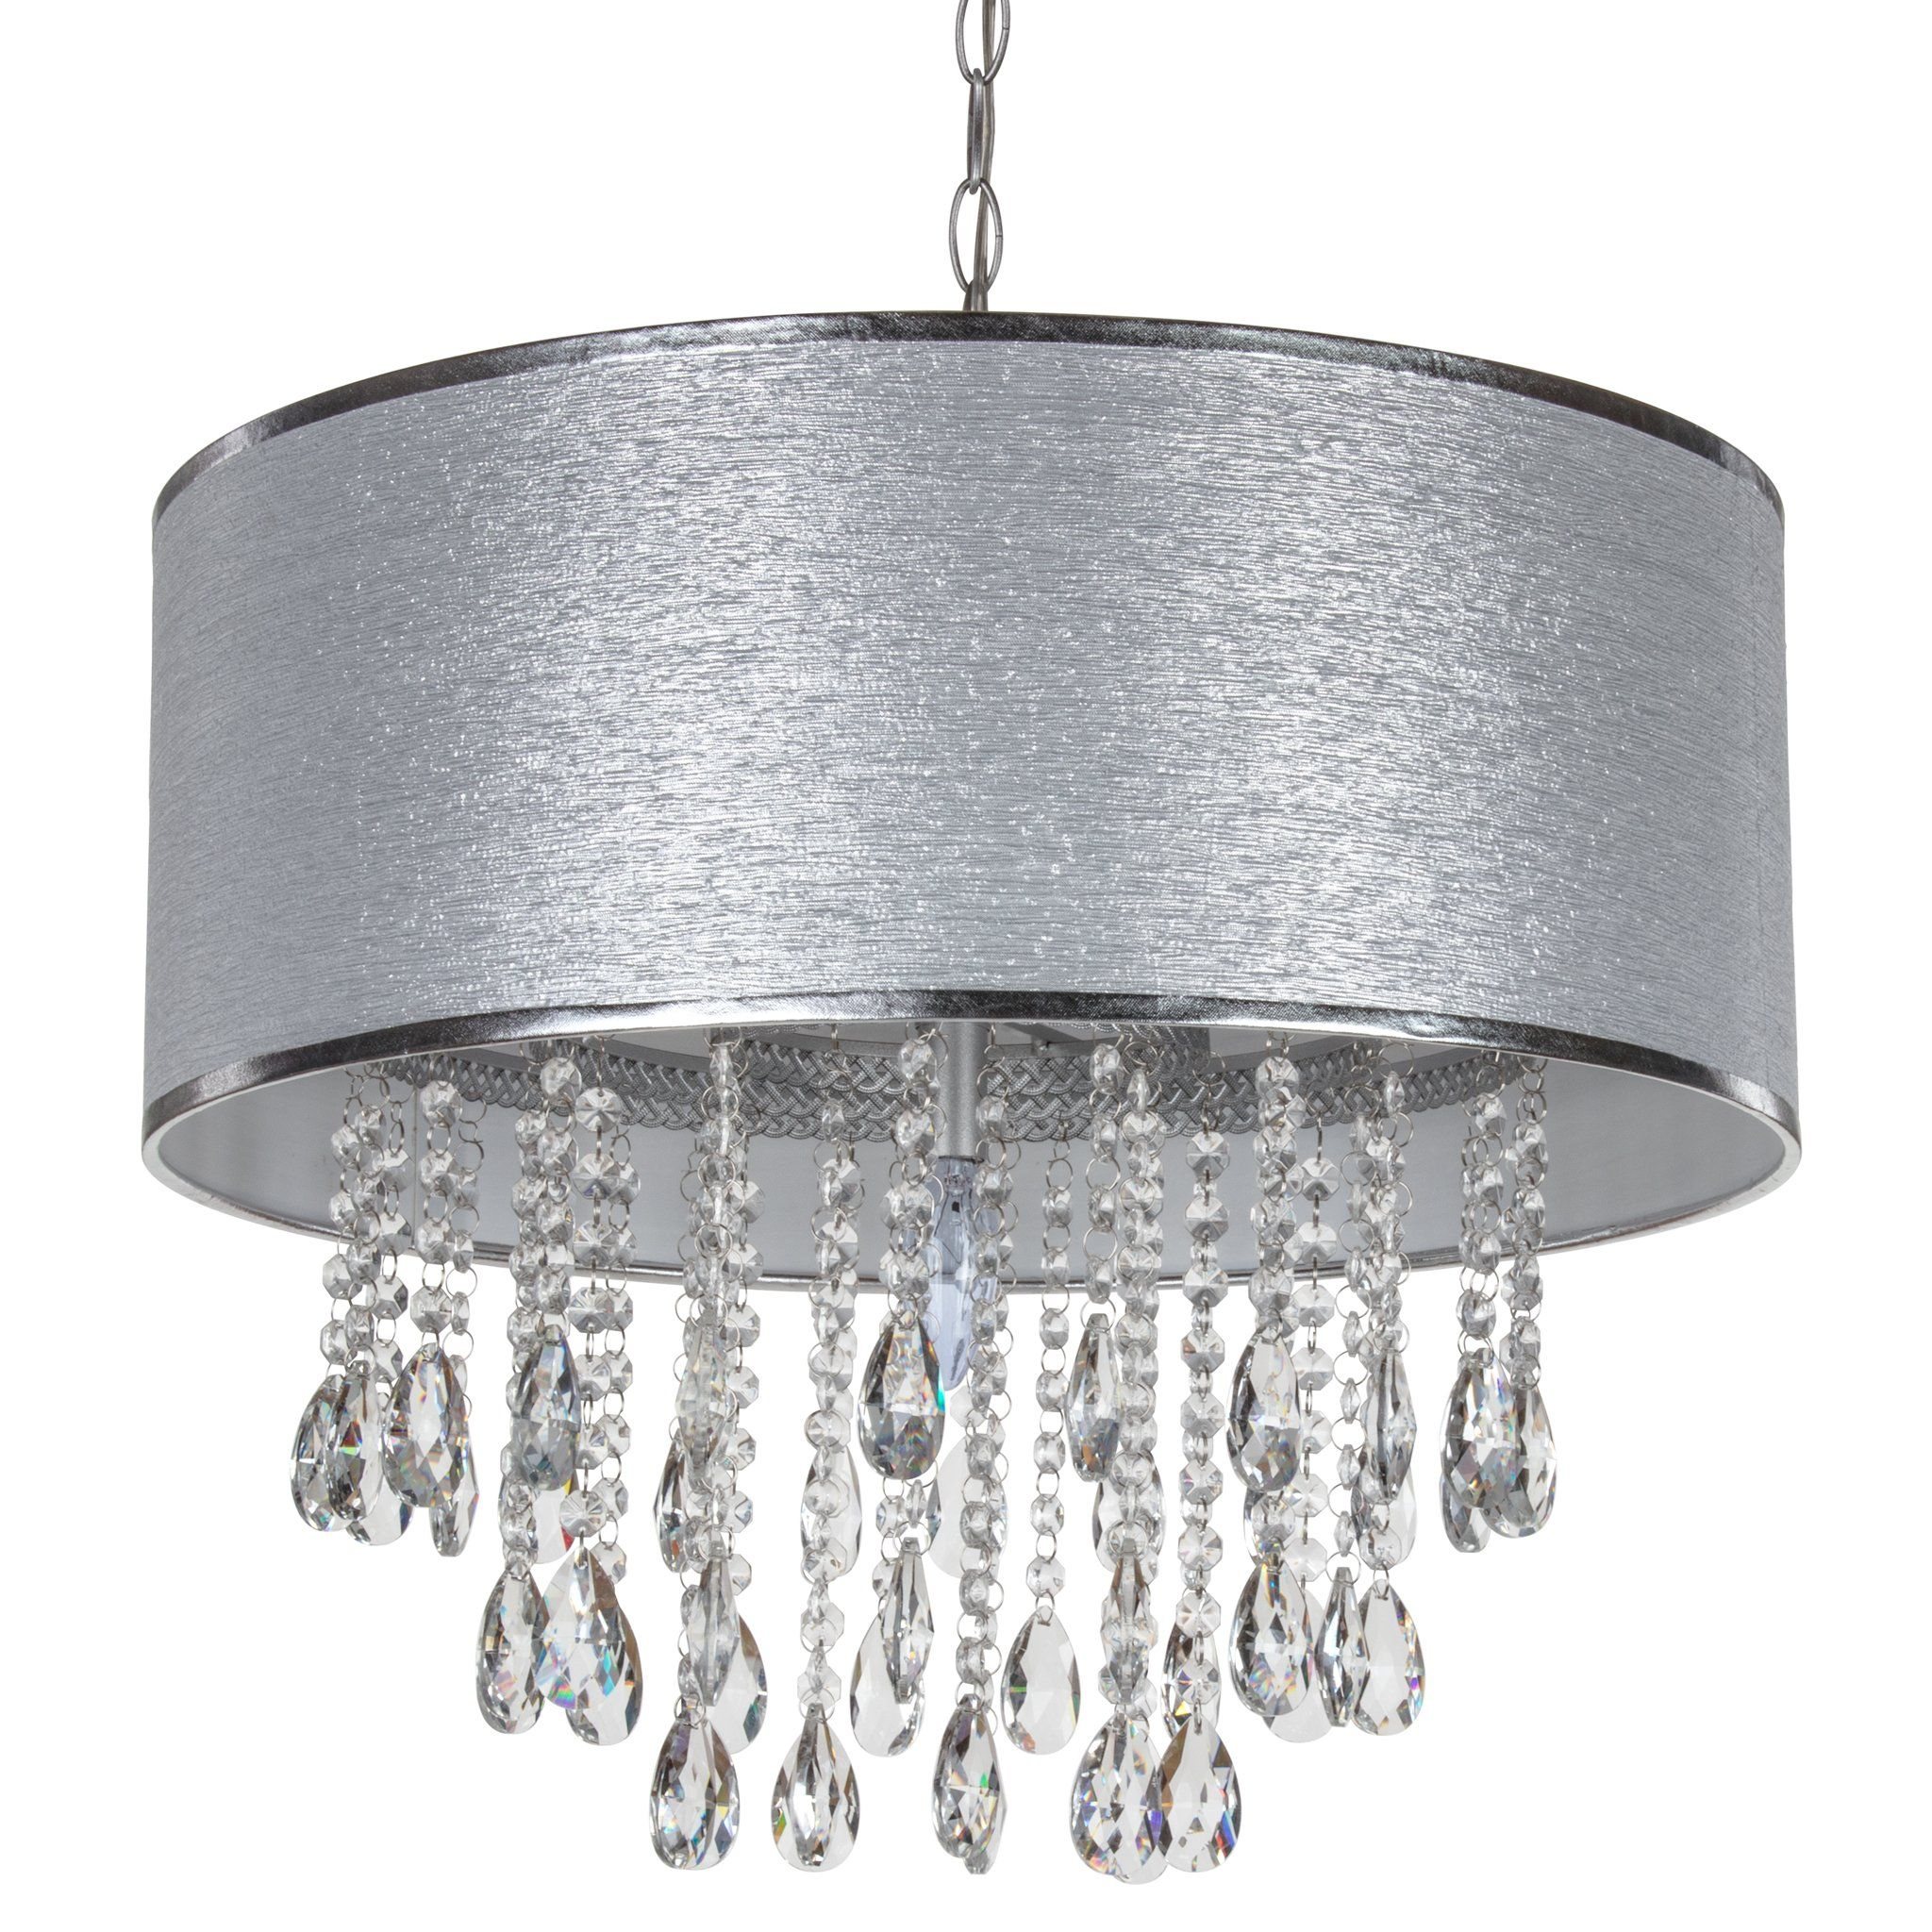 Large 5 Light Crystal Plug In Chandelier With Cylinder Shade Silver In 2021 Plug In Chandelier Hanging Ceiling Lamps Glass Pendant Light